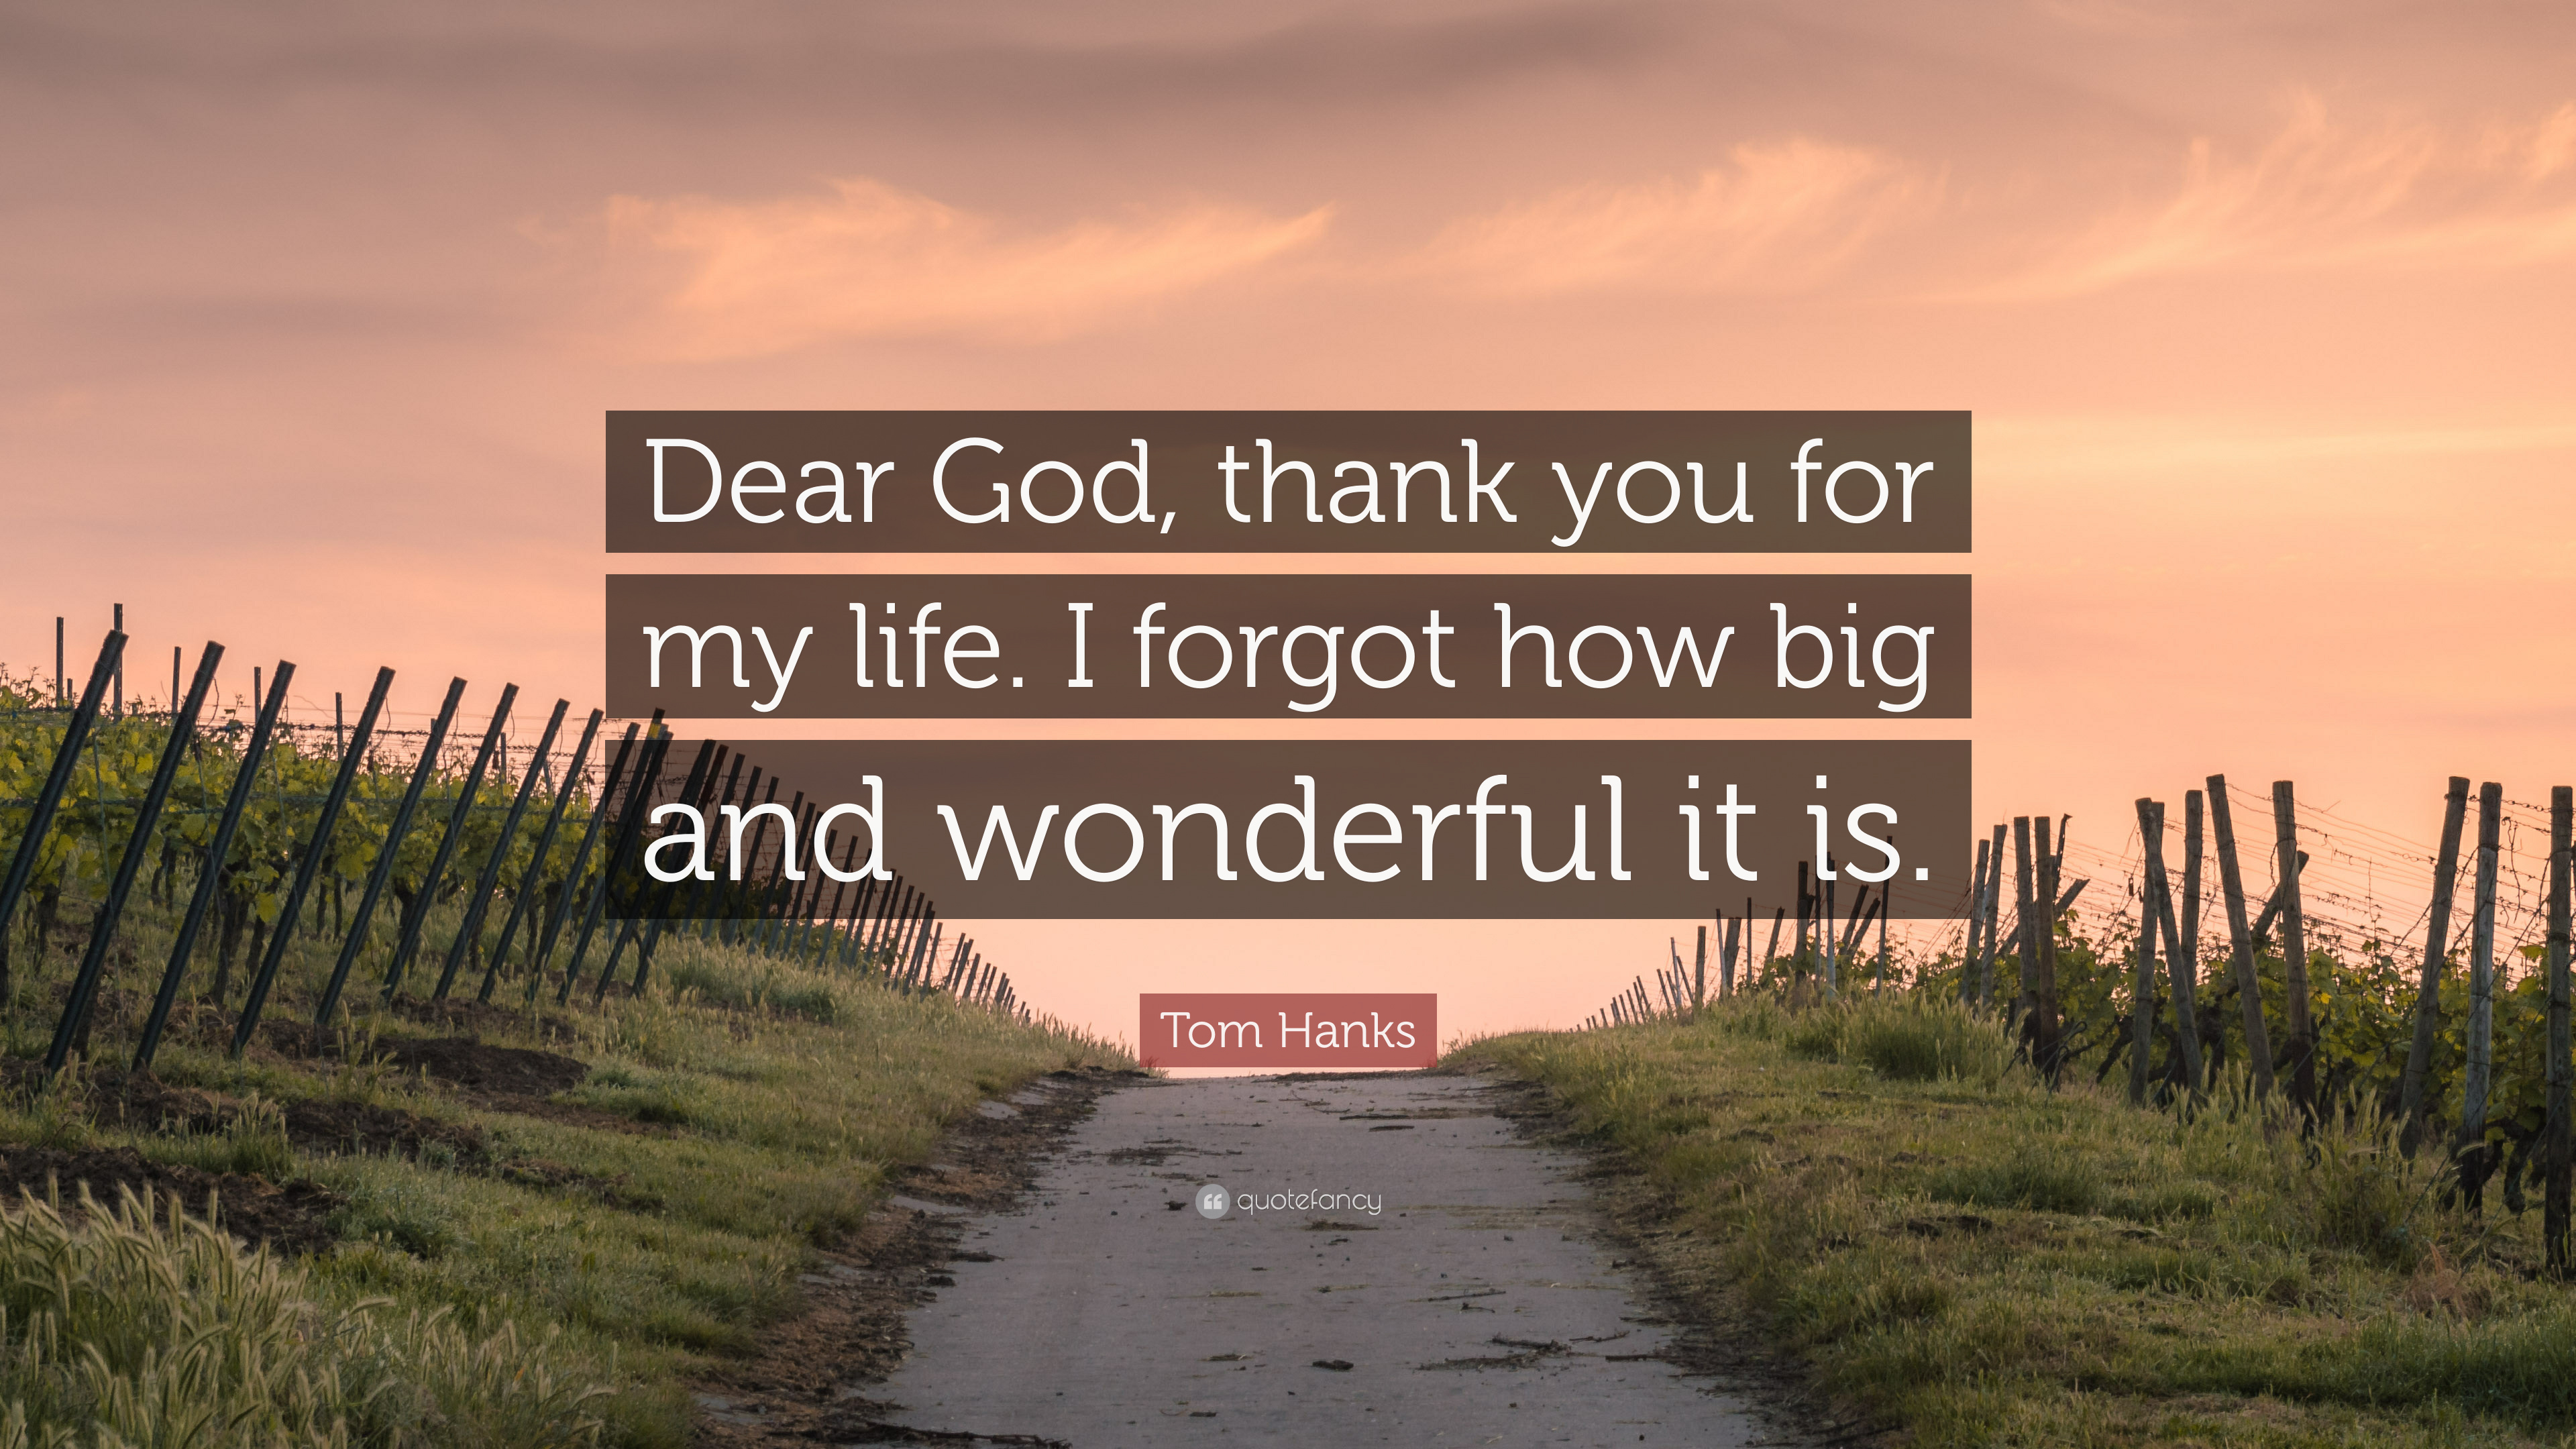 Tom Hanks Quote: U201cDear God, Thank You For My Life. I Forgot